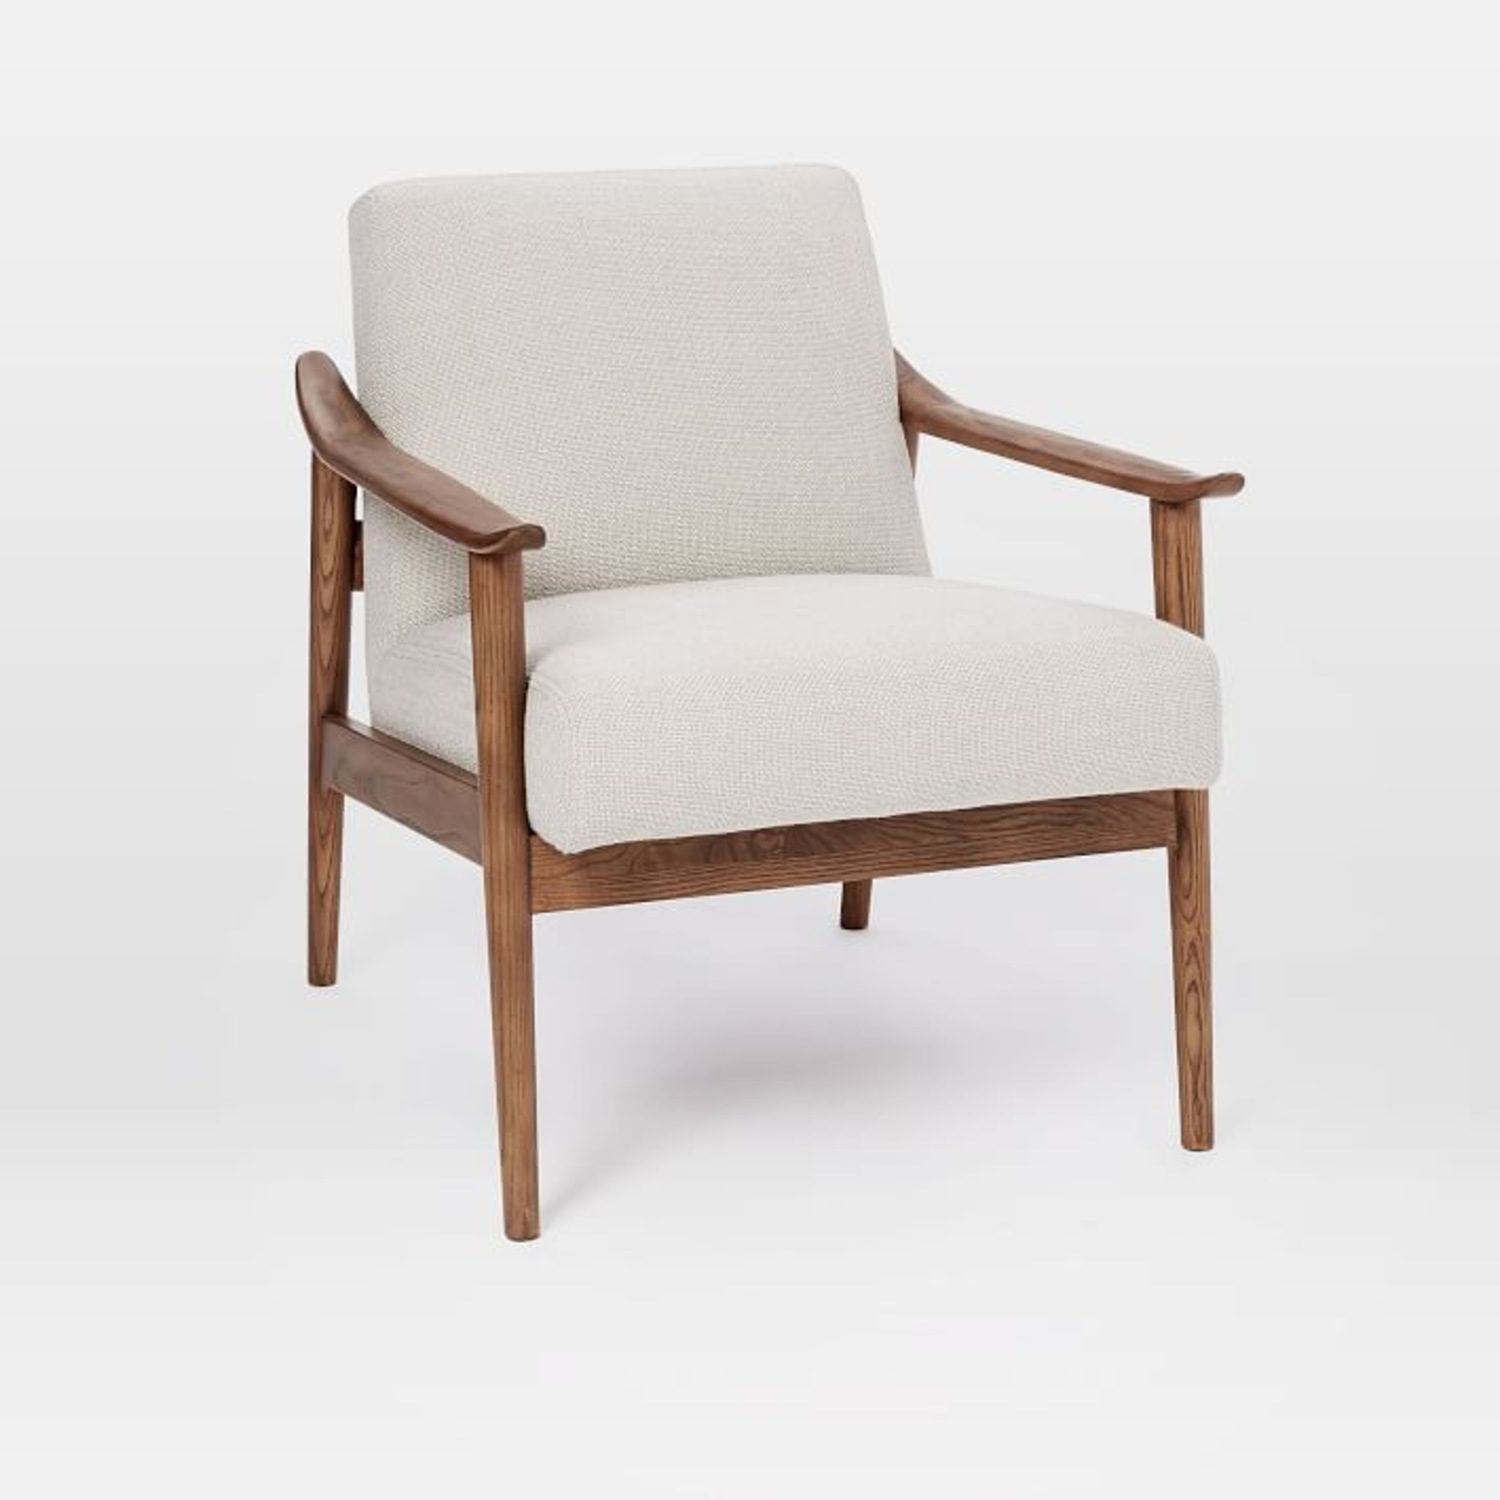 West Elm Mid-Century Upholstered Chair - image-0